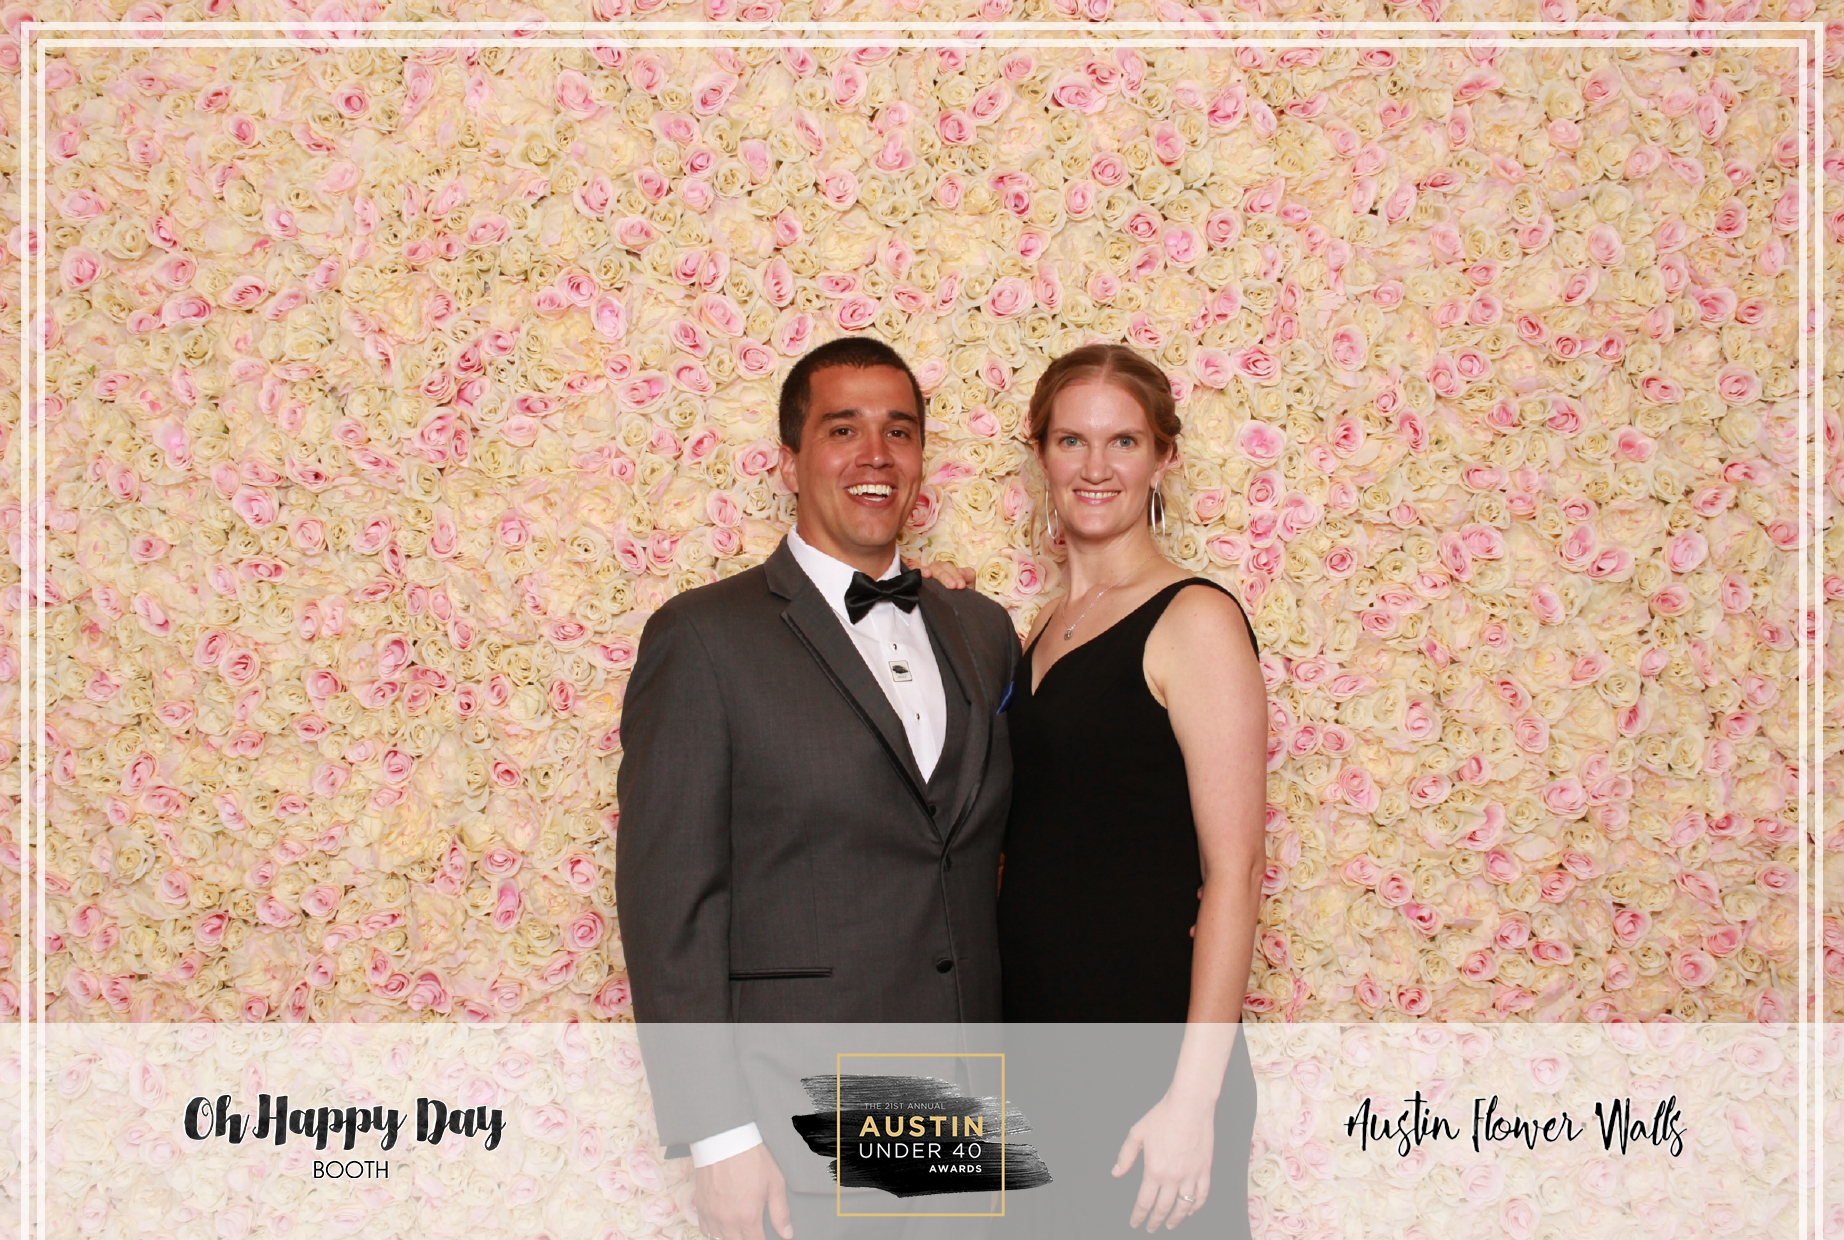 Oh Happy Day Booth - Austin Under 40-65.jpg